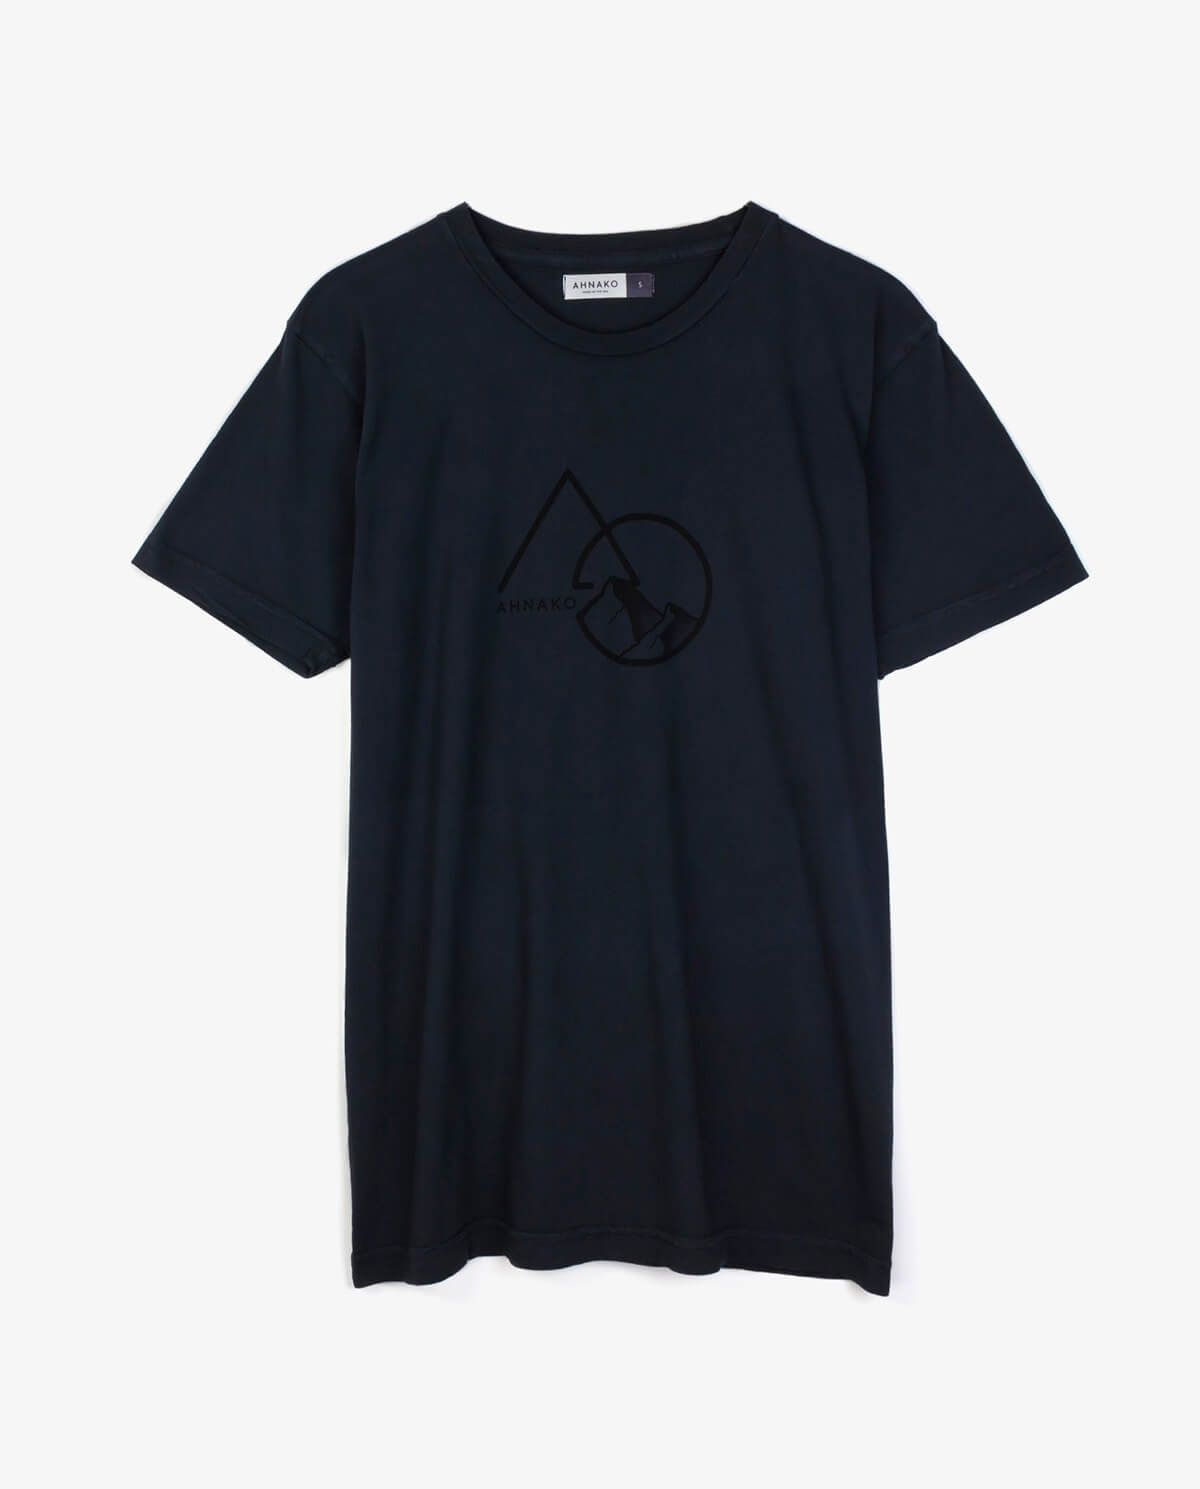 Ahnako Mountains - Vintage Black T-shirt